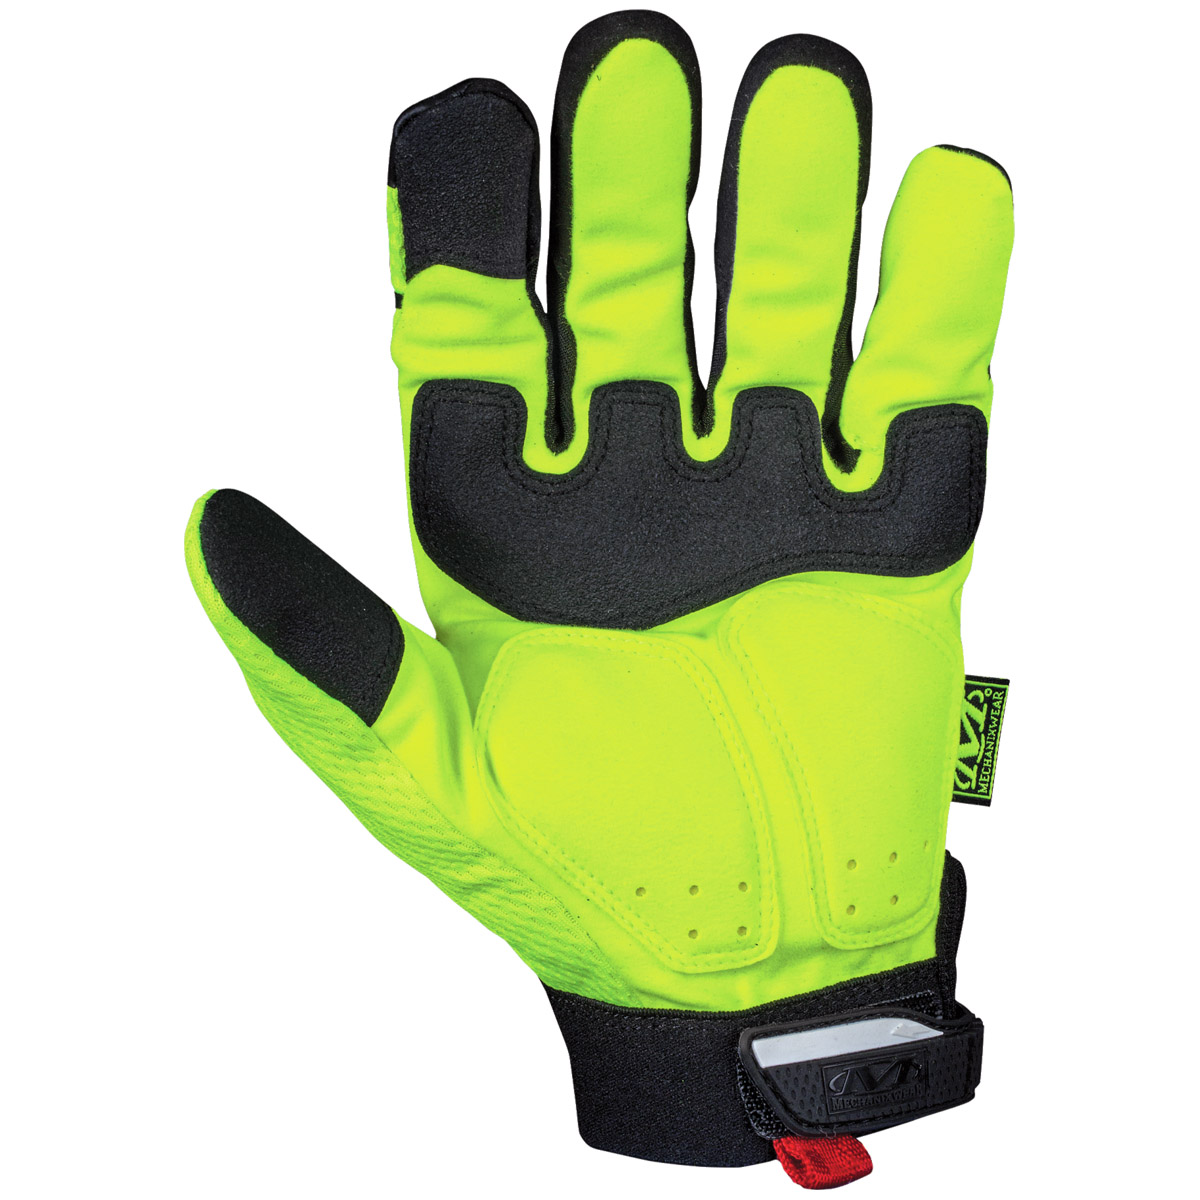 Leather work gloves m pact 2 - Sentinel Mechanix Wear The Safety M Pact Hi Viz Work Mens Gloves Impact Protection Yellow